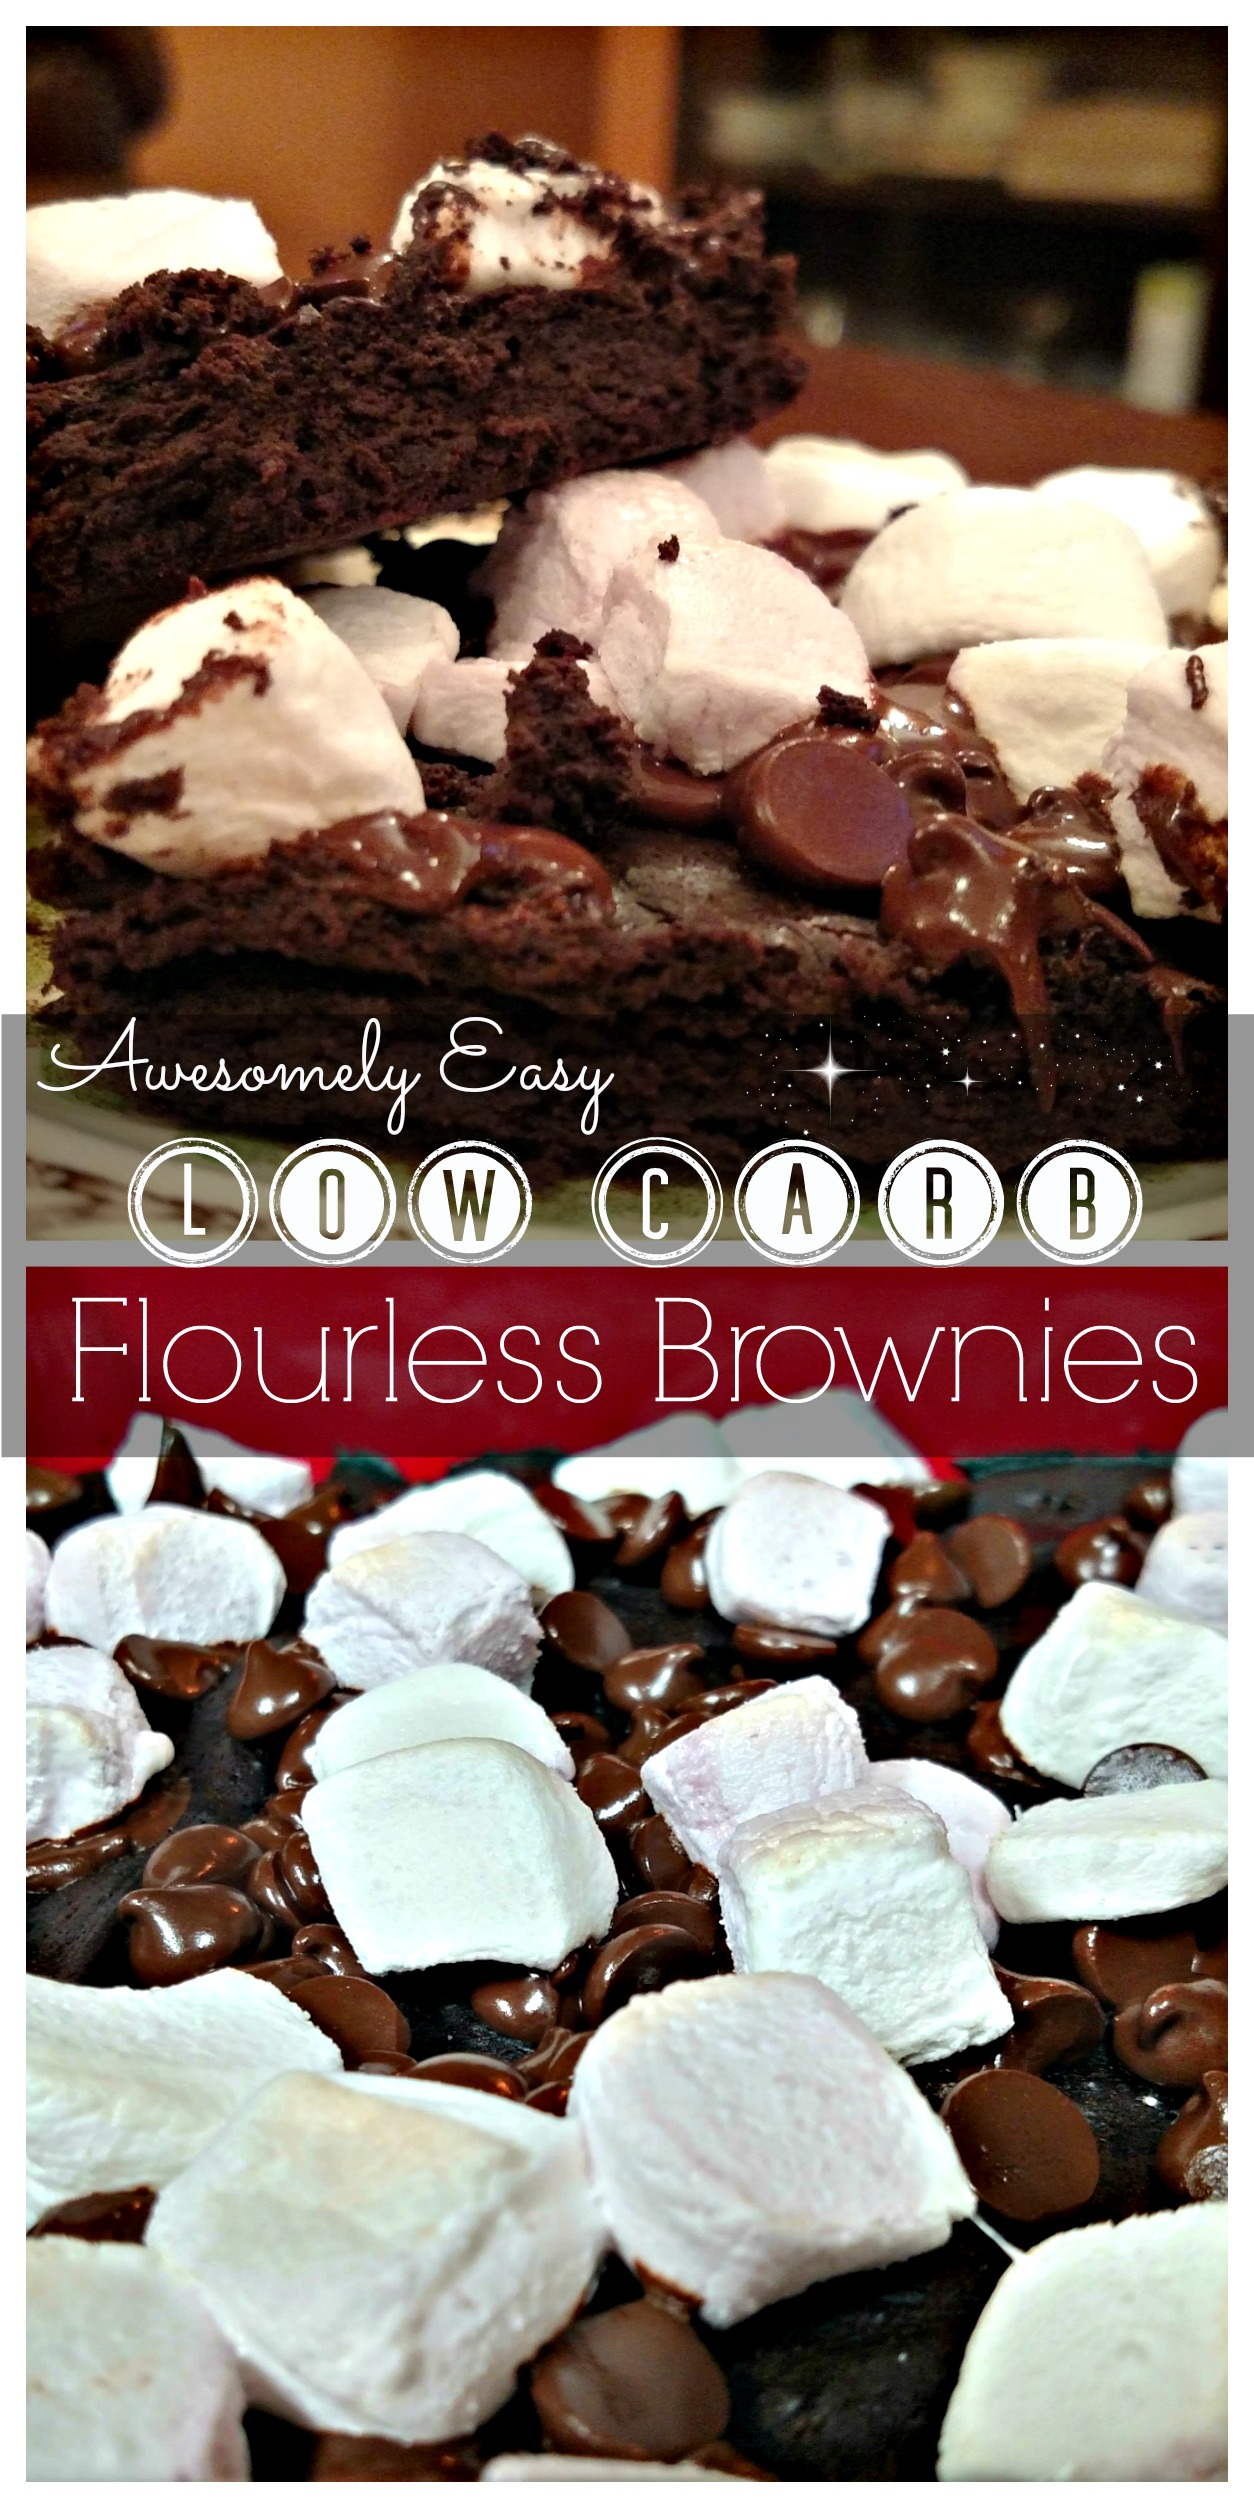 Awesomely Easy Low Carb Flourless Brownies